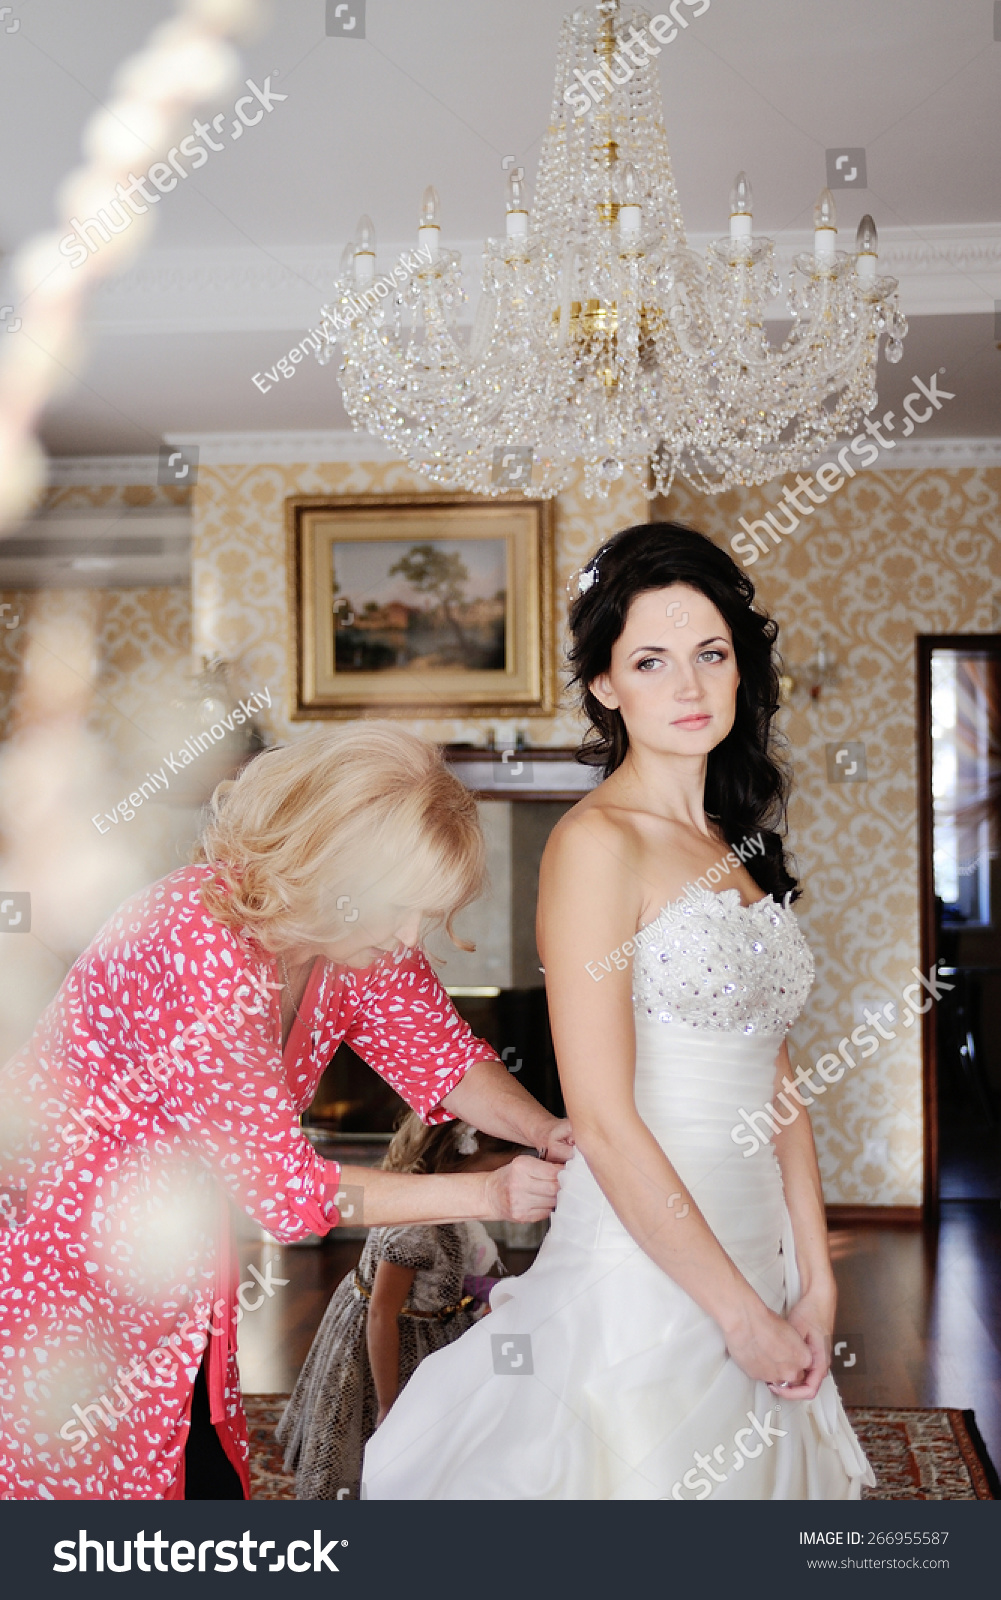 Mom Helps Bride Wear Wedding Dress Stock Photo Edit Now 266955587,Party Dress For Wedding Guest